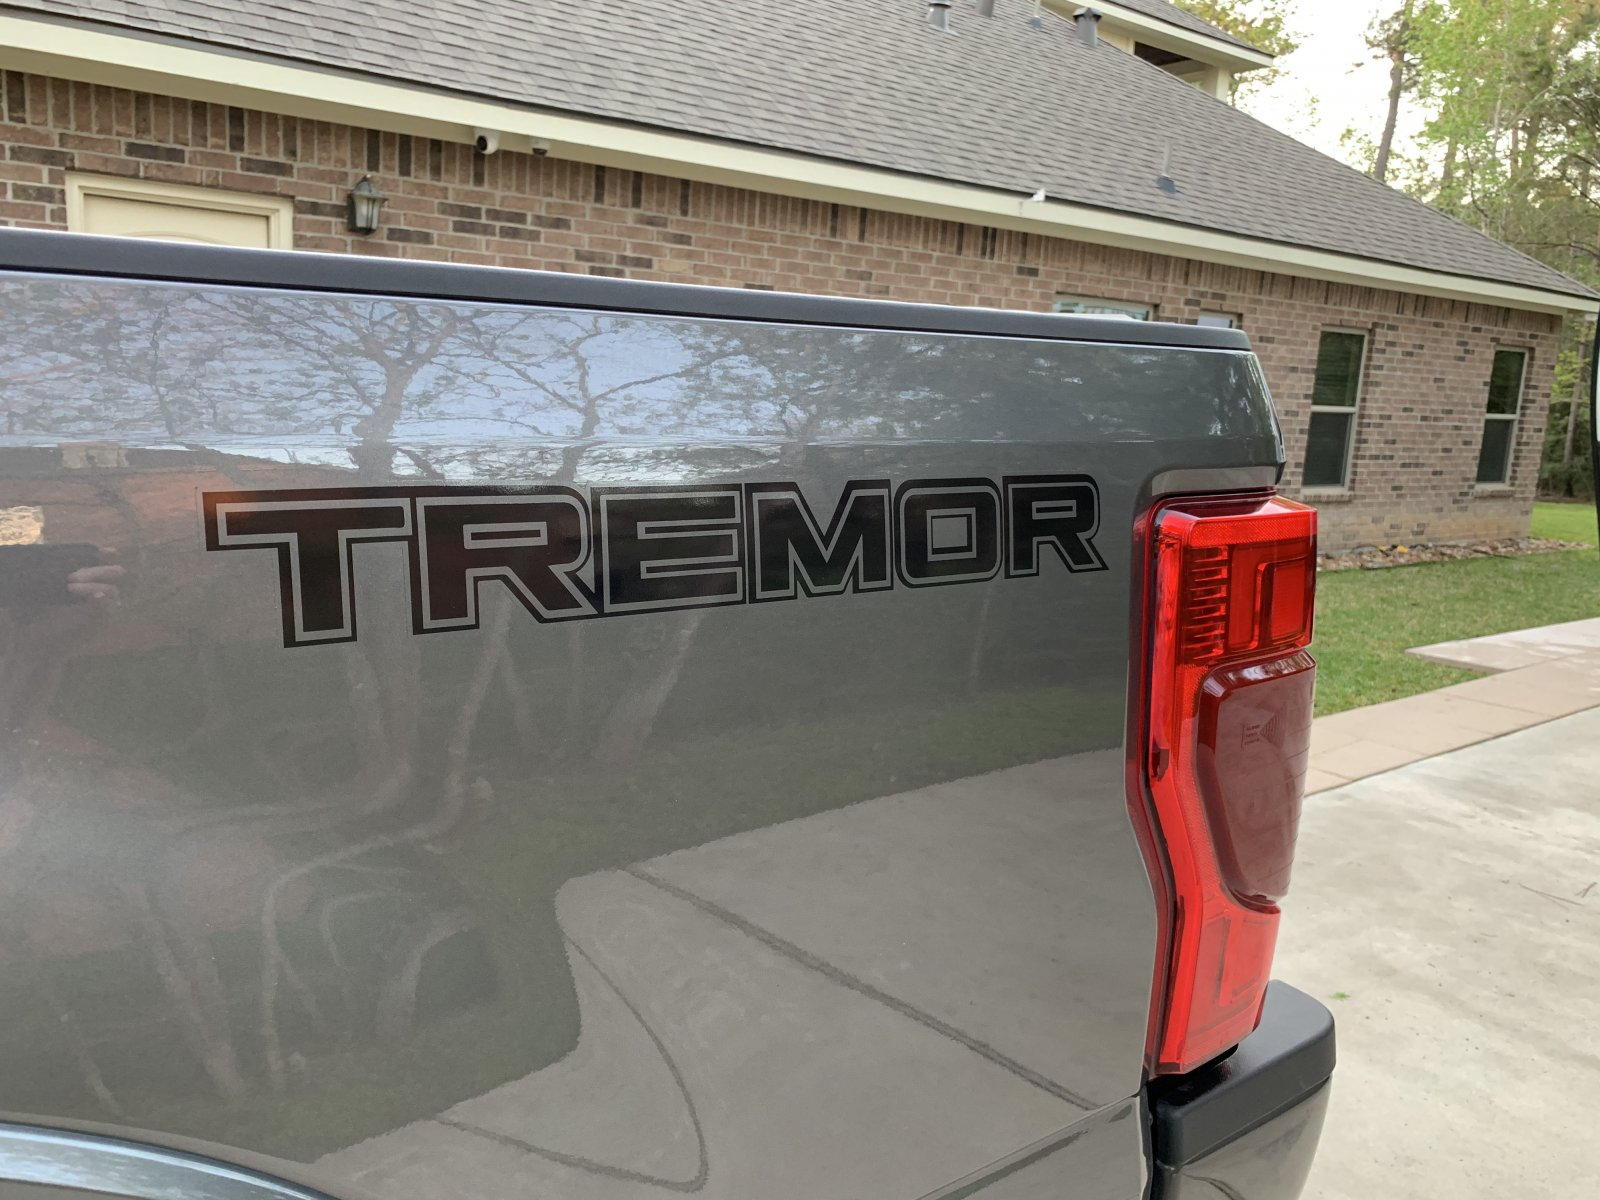 Tremor-Sticker.jpeg